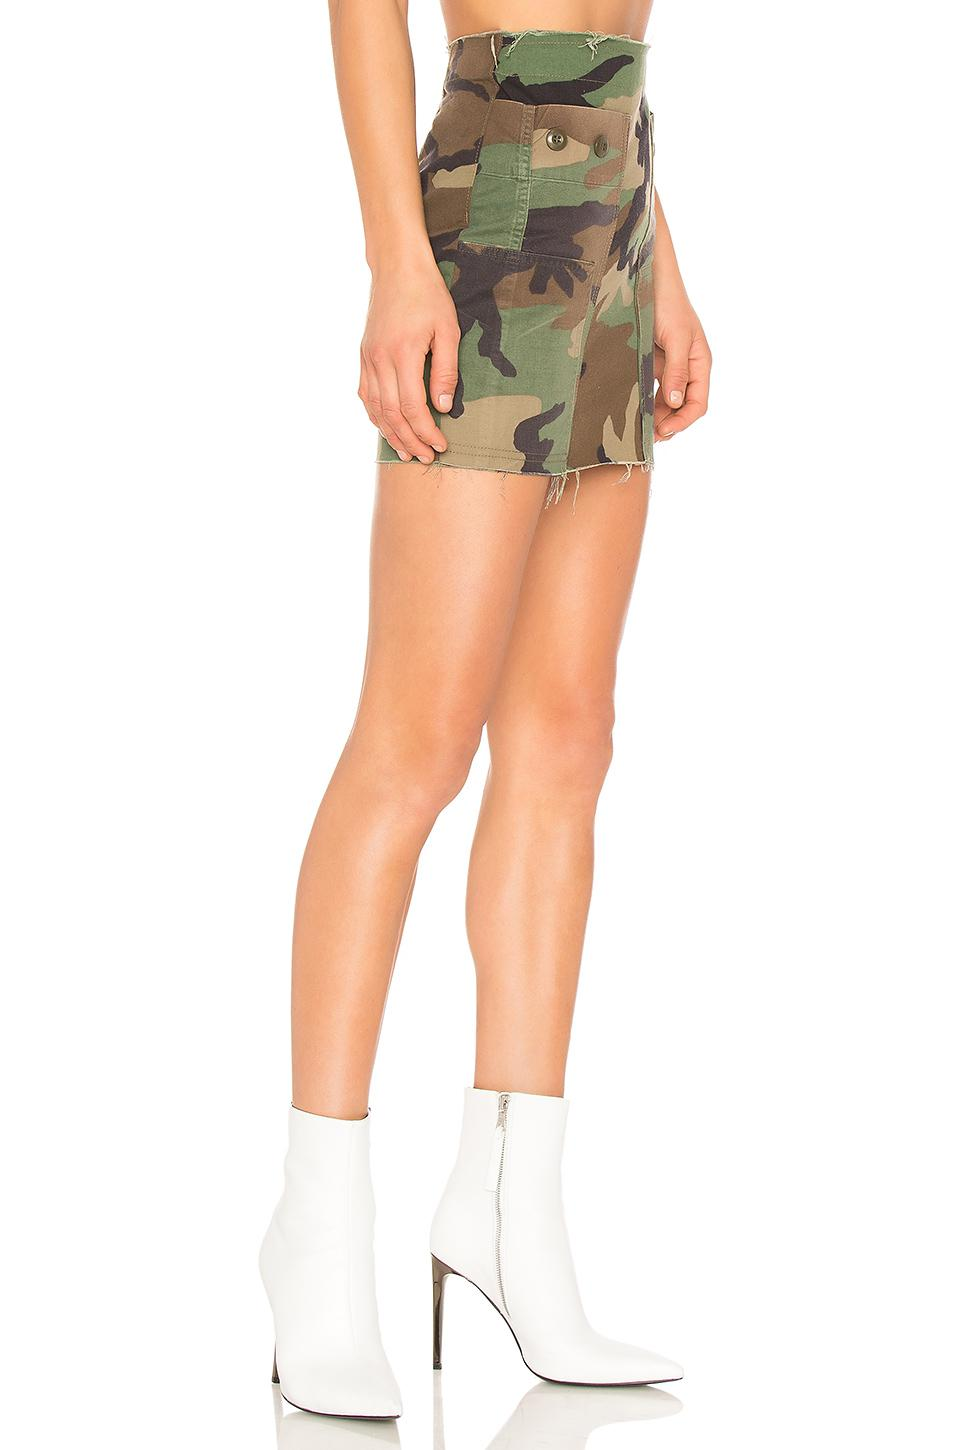 b420c24a4 Kendall + Kylie Repurposed Camo Skirt in Green - Lyst